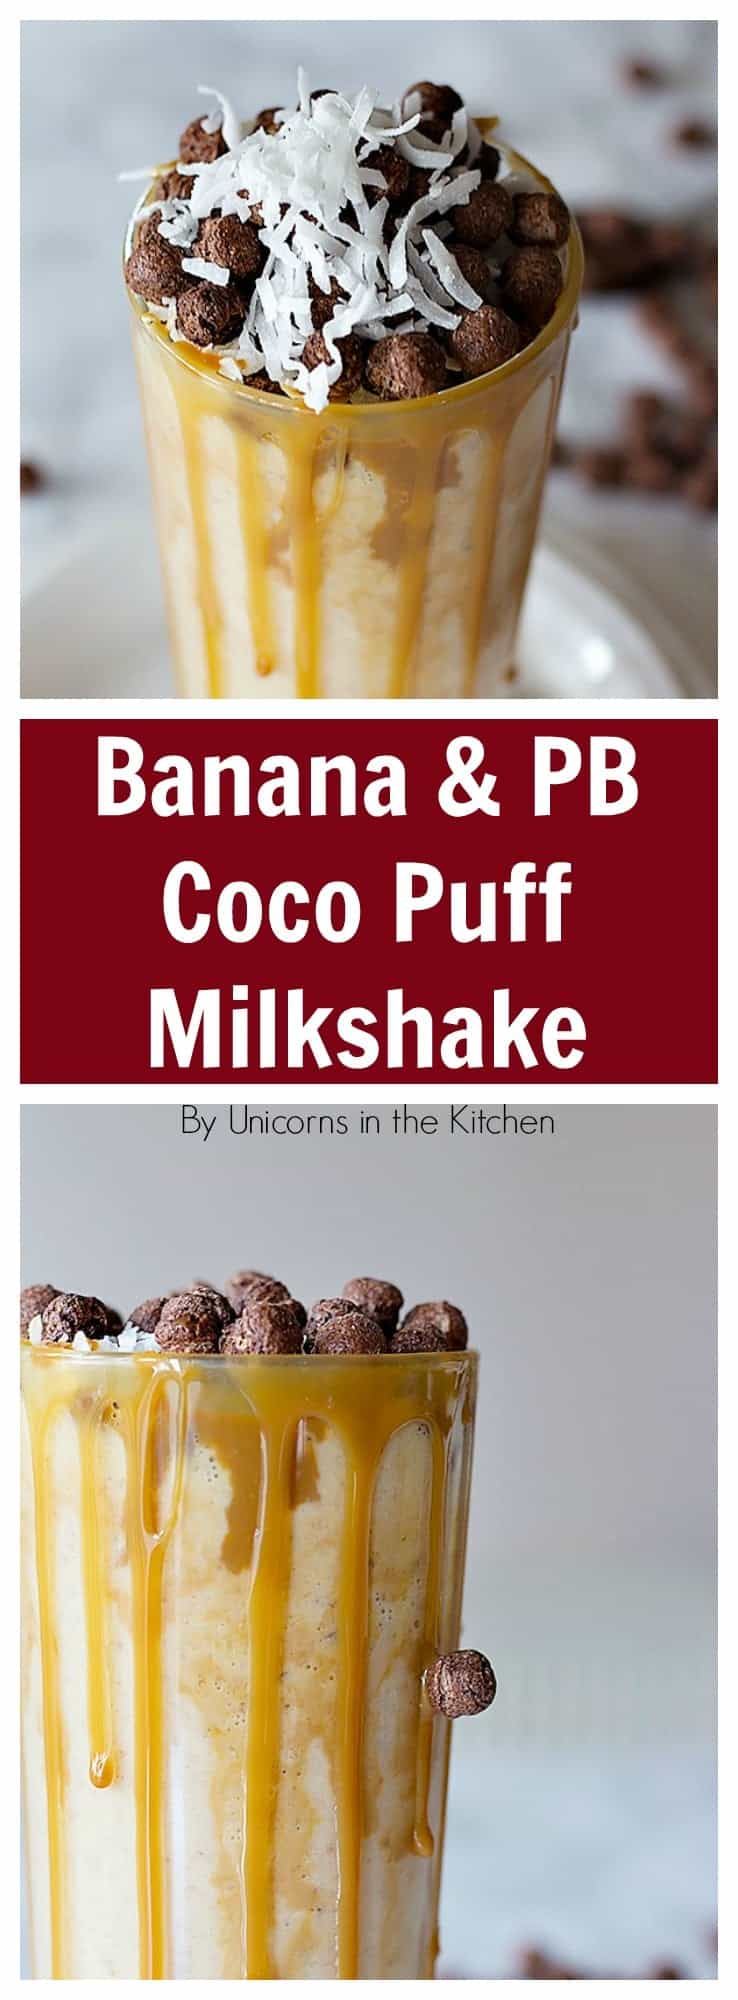 This Banana Peanut Butter Coco Puff Milkshake will make your breakfast more exciting and delicious because it has all the best flavor combinations in one tall glass!